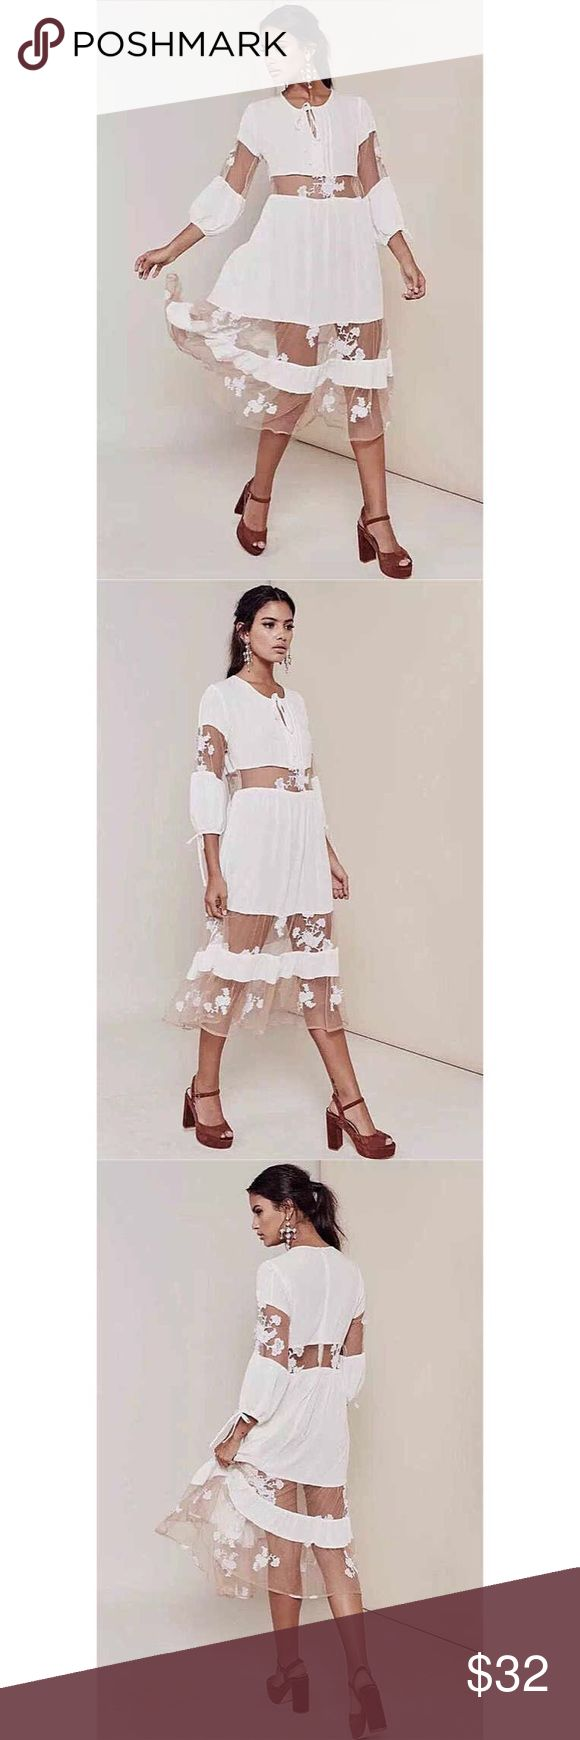 NWOT FL&L inspired Maxi lace dress XS $69 NWOT FL&L inspired Maxi lace dress  Condition: New without tags Color: Cream/White Size: XS Retail Price US$69 For Love and Lemons Inspired!  Measurement: Length 107cm Bust 78cm Sleeve 45cm Waist 66cm For Love and Lemons Dresses Maxi